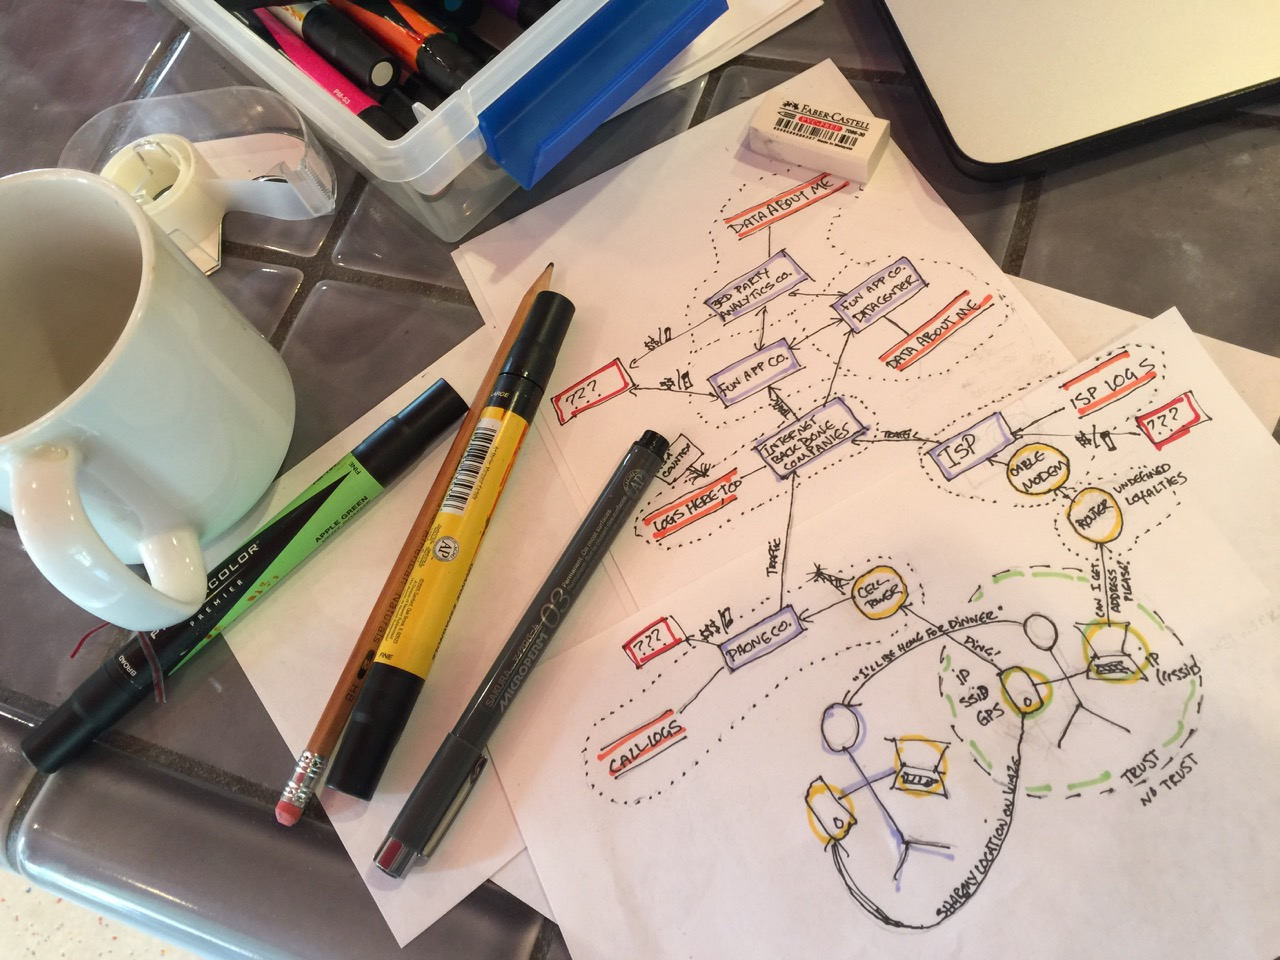 diagram on paper surrounded by pens, pencils and a coffee cup.